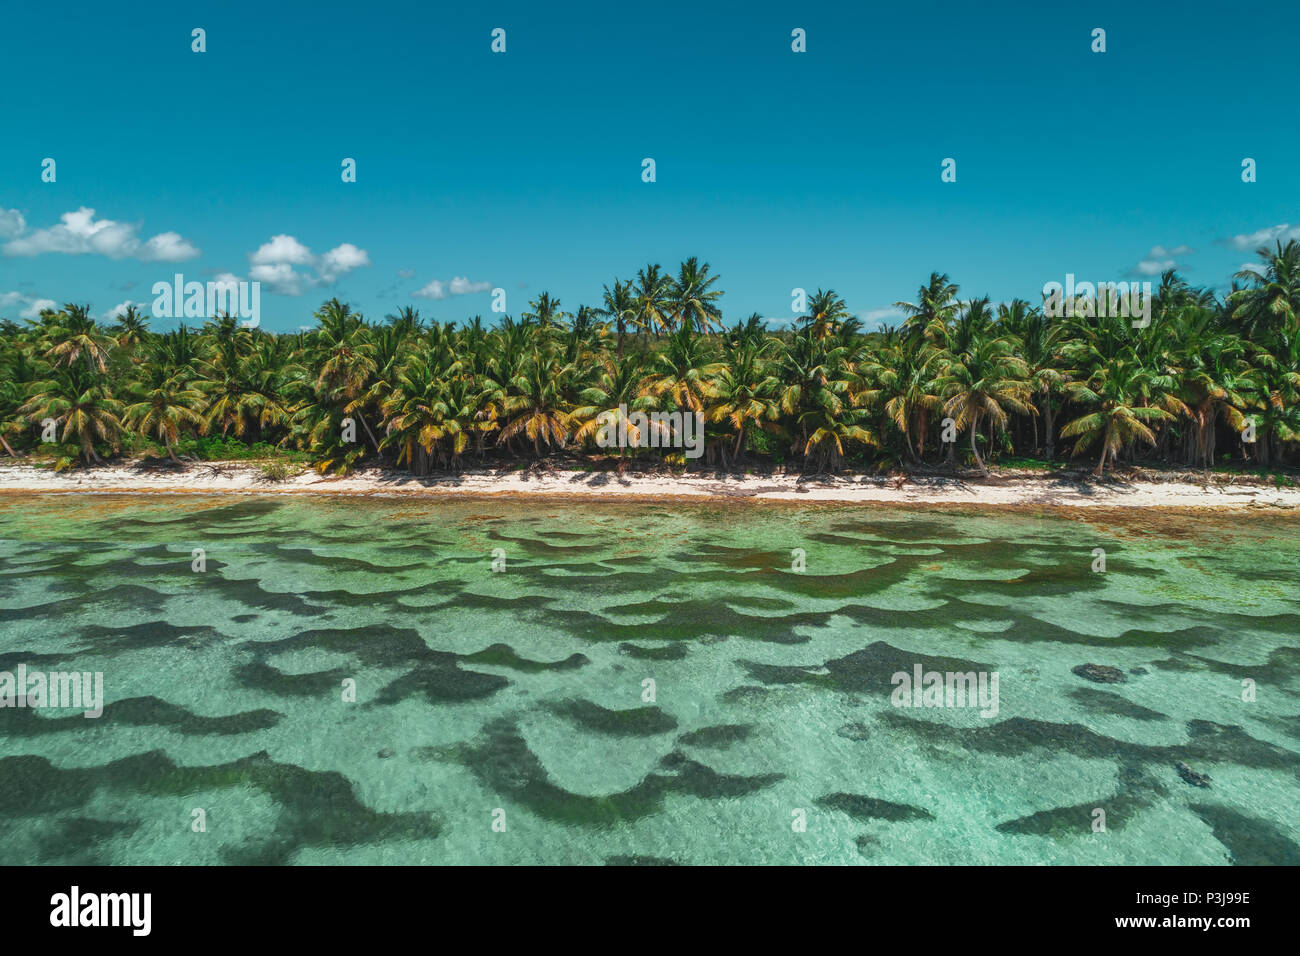 Aerial view of tropical island beach, Dominican Republic - Stock Image